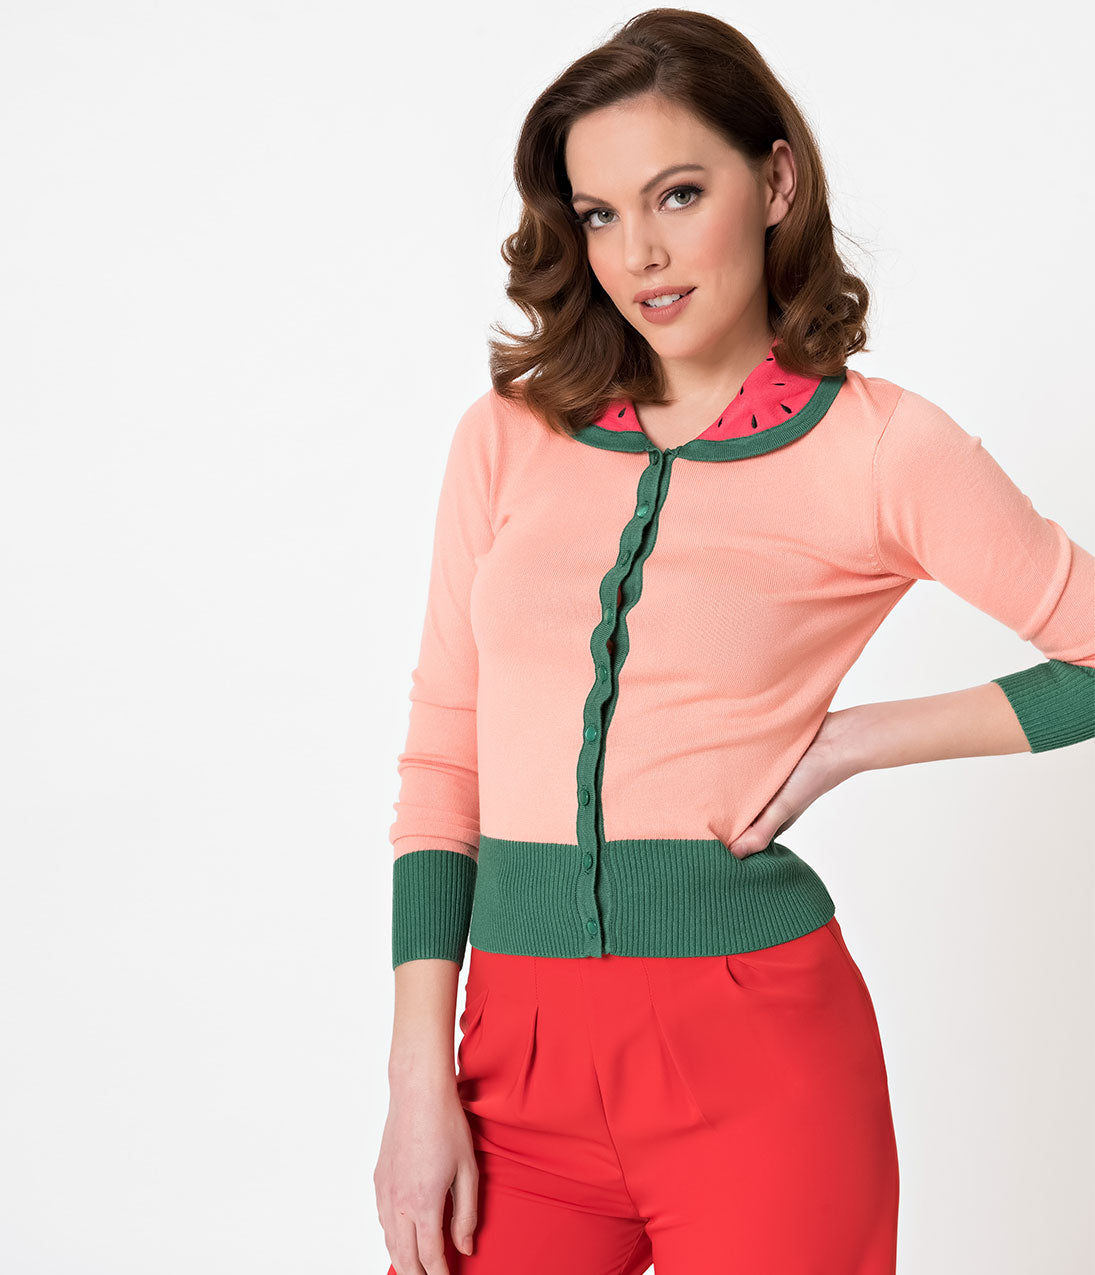 Vintage Sweaters: Cable Knit, Fair Isle Cardigans & Sweaters Voodoo Vixen Baby Pink Long Sleeve Watermelon Cardigan $52.00 AT vintagedancer.com